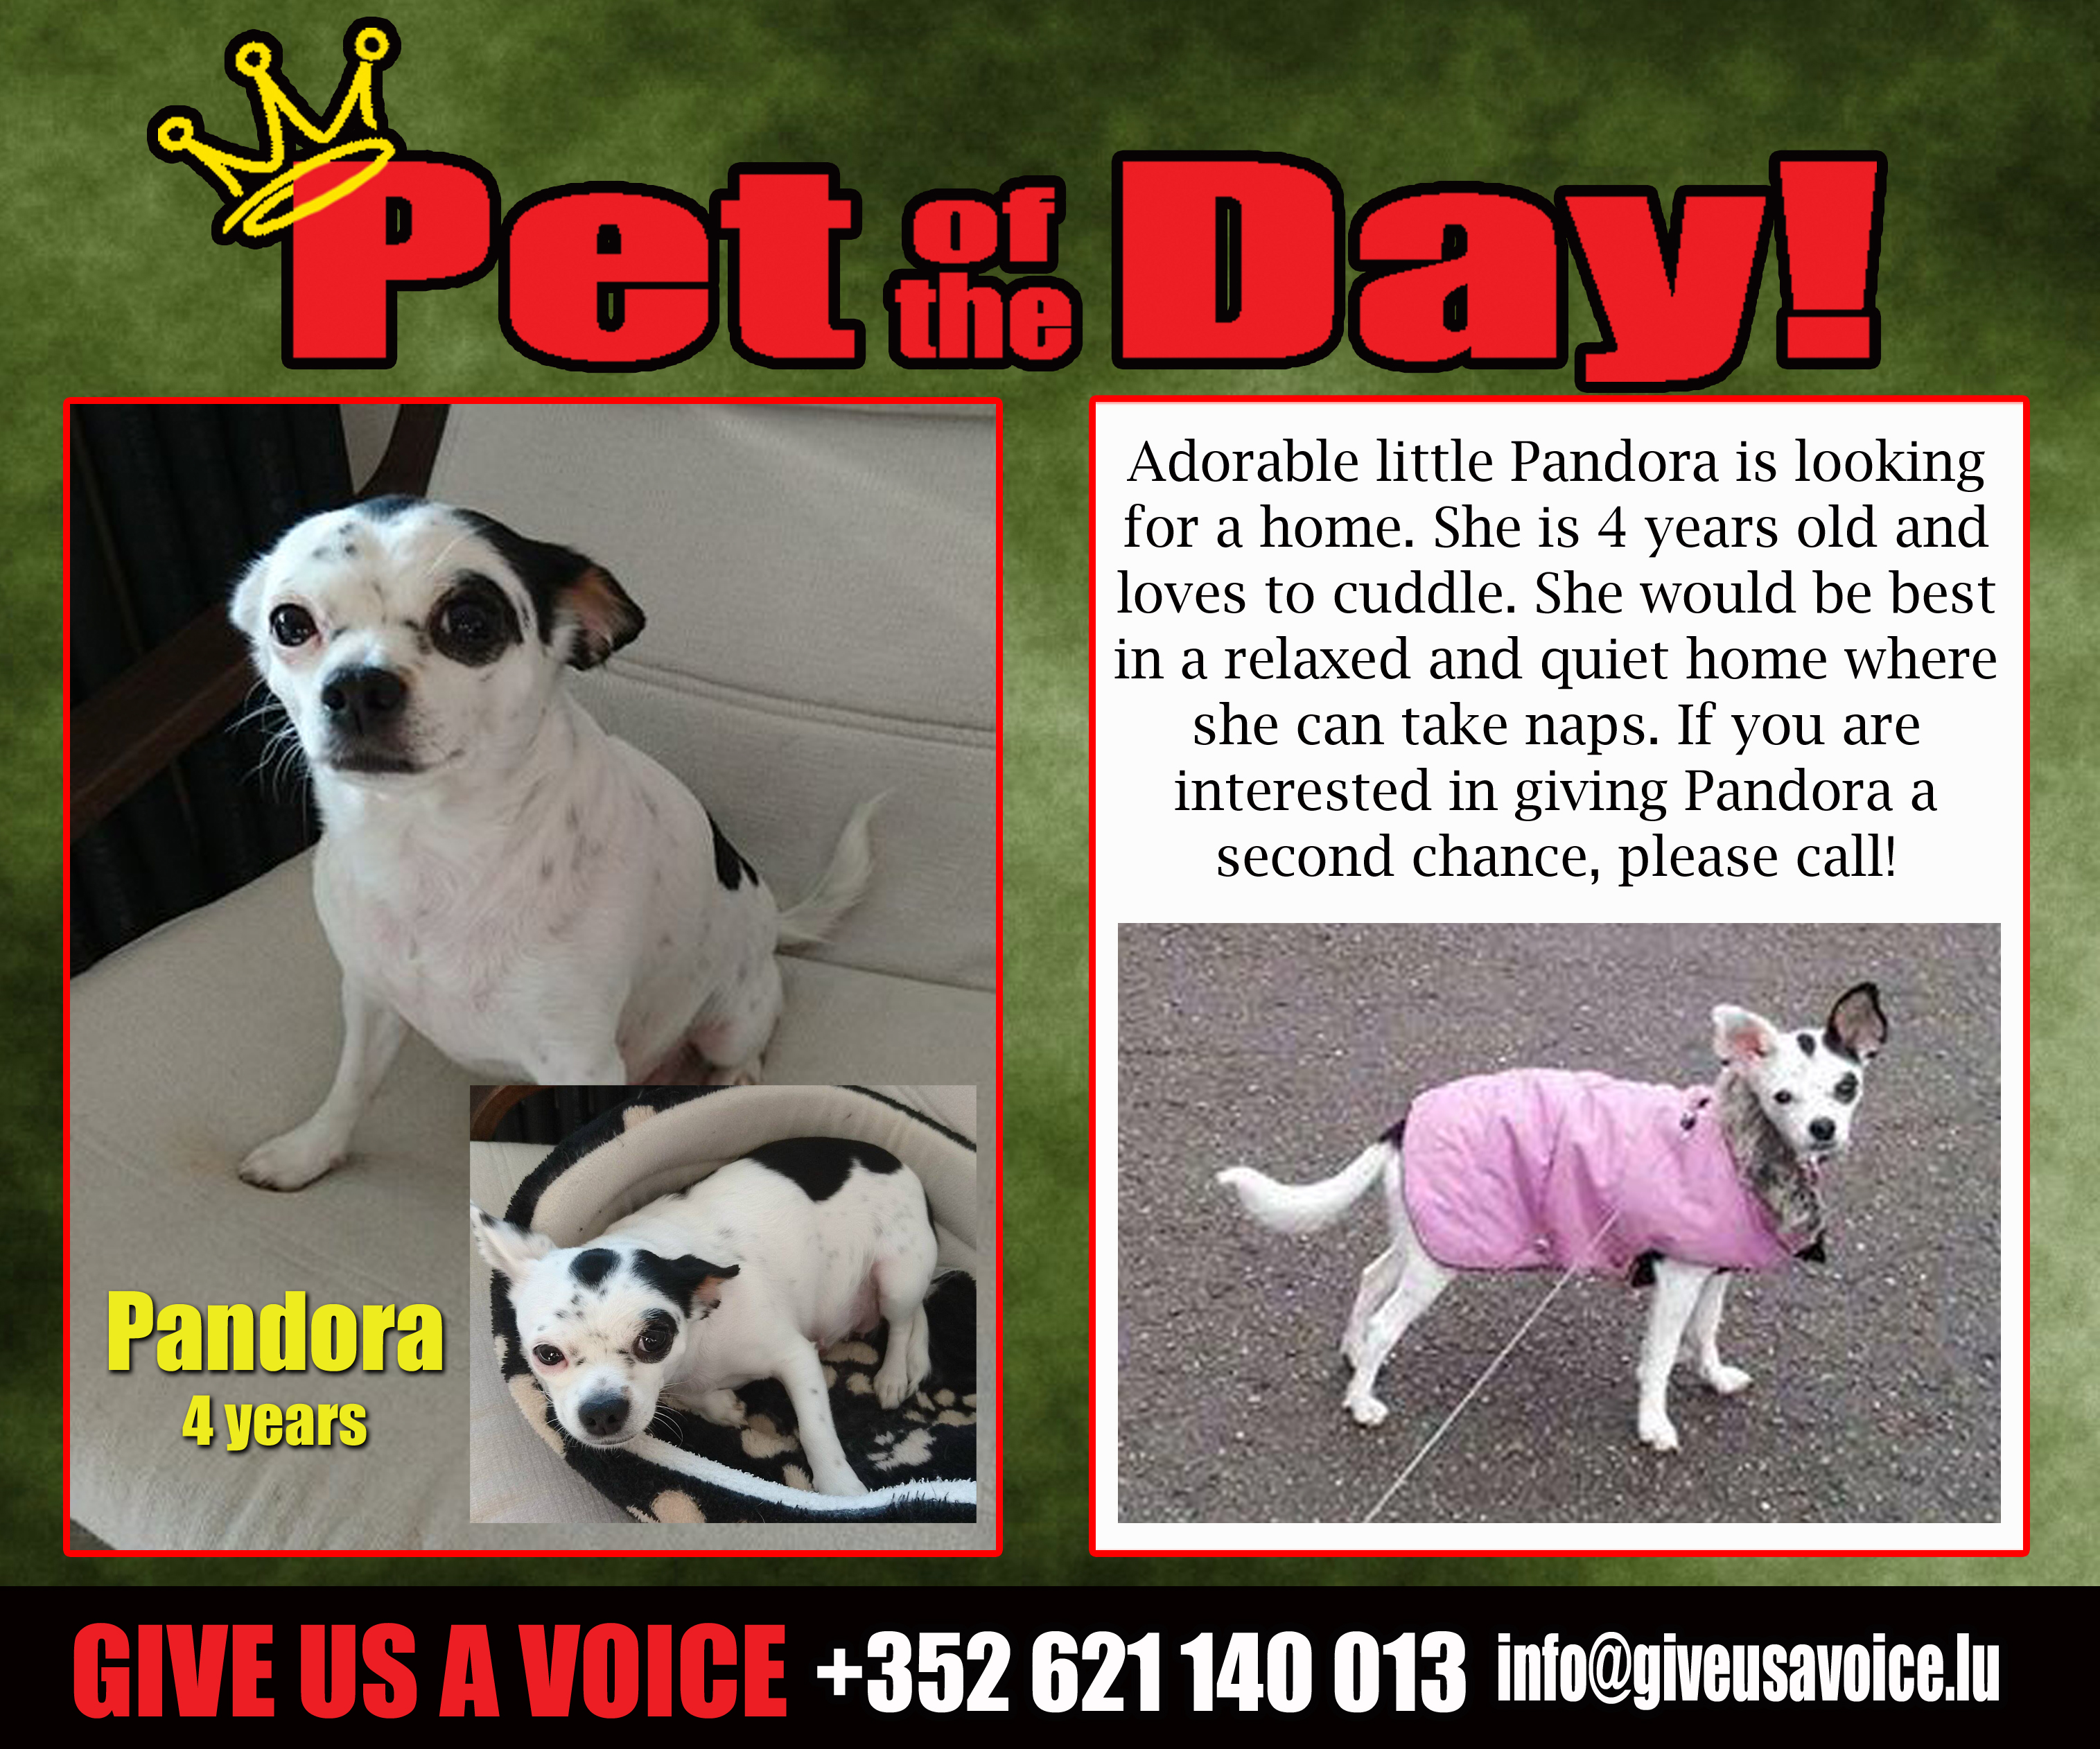 03-18-16 Pet of the Day